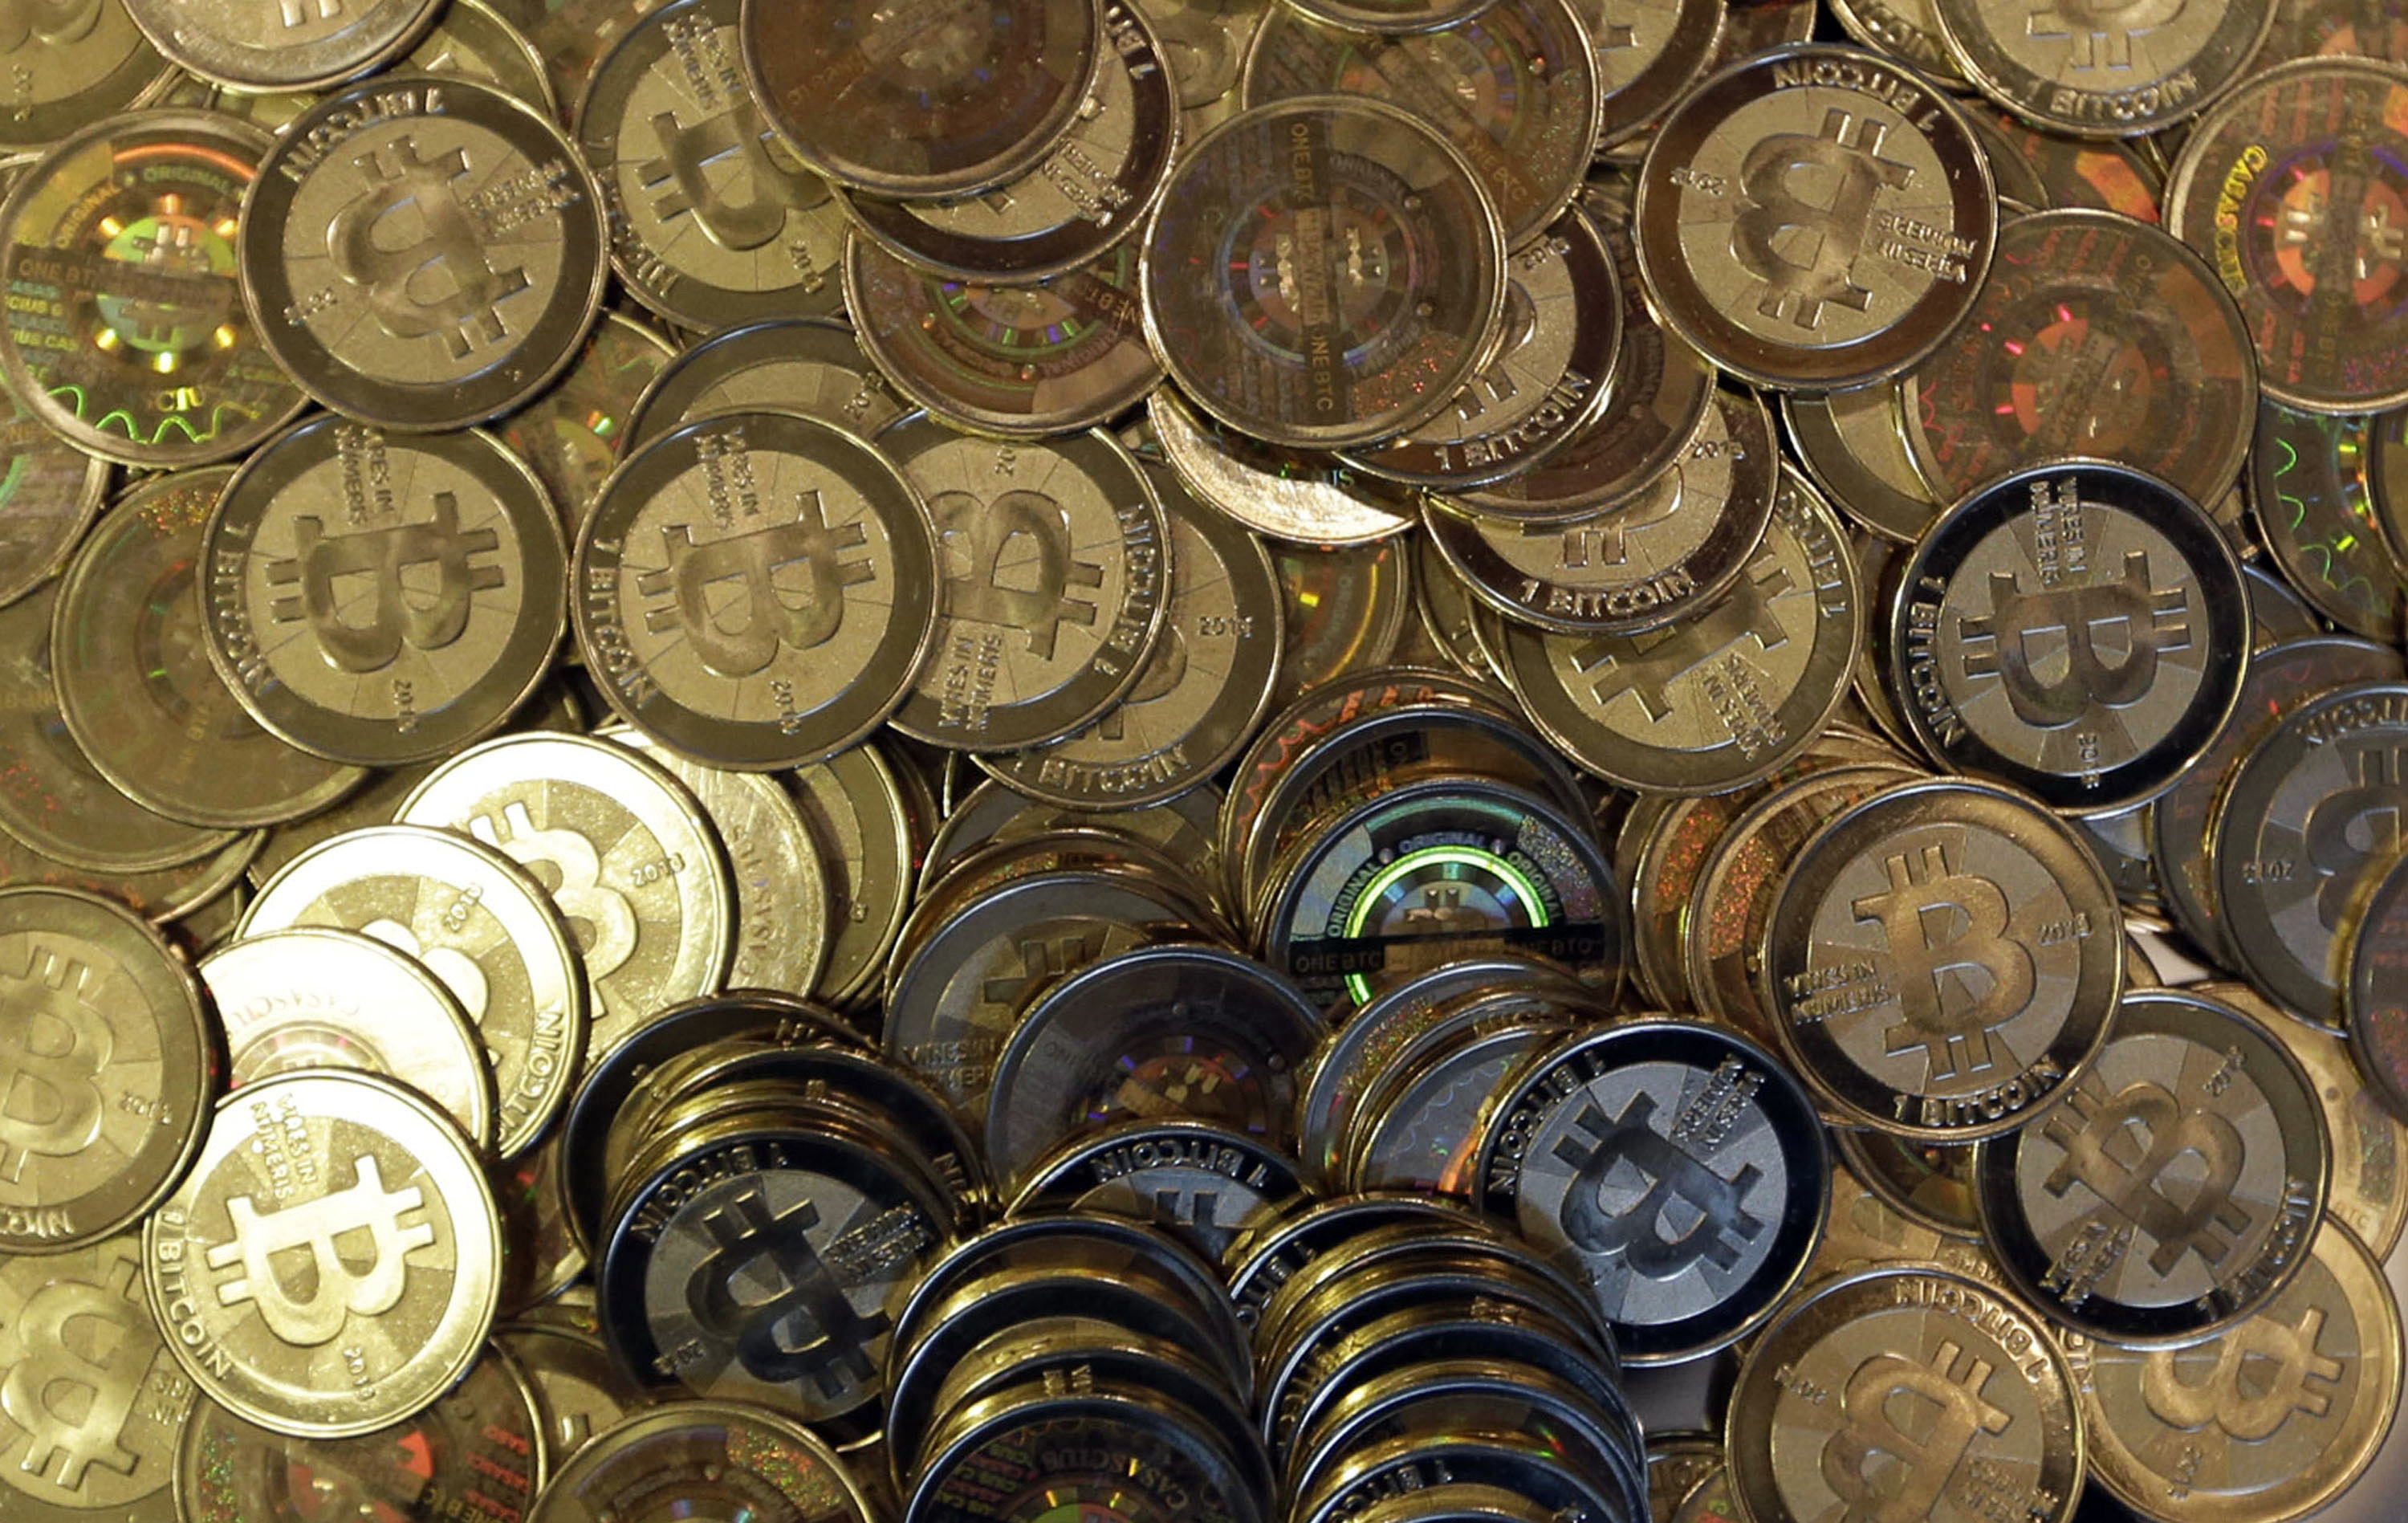 Pile of physical Bitcoins, known as Casascius coins, which were created by Mike Caldwell in Sandy, Utah.